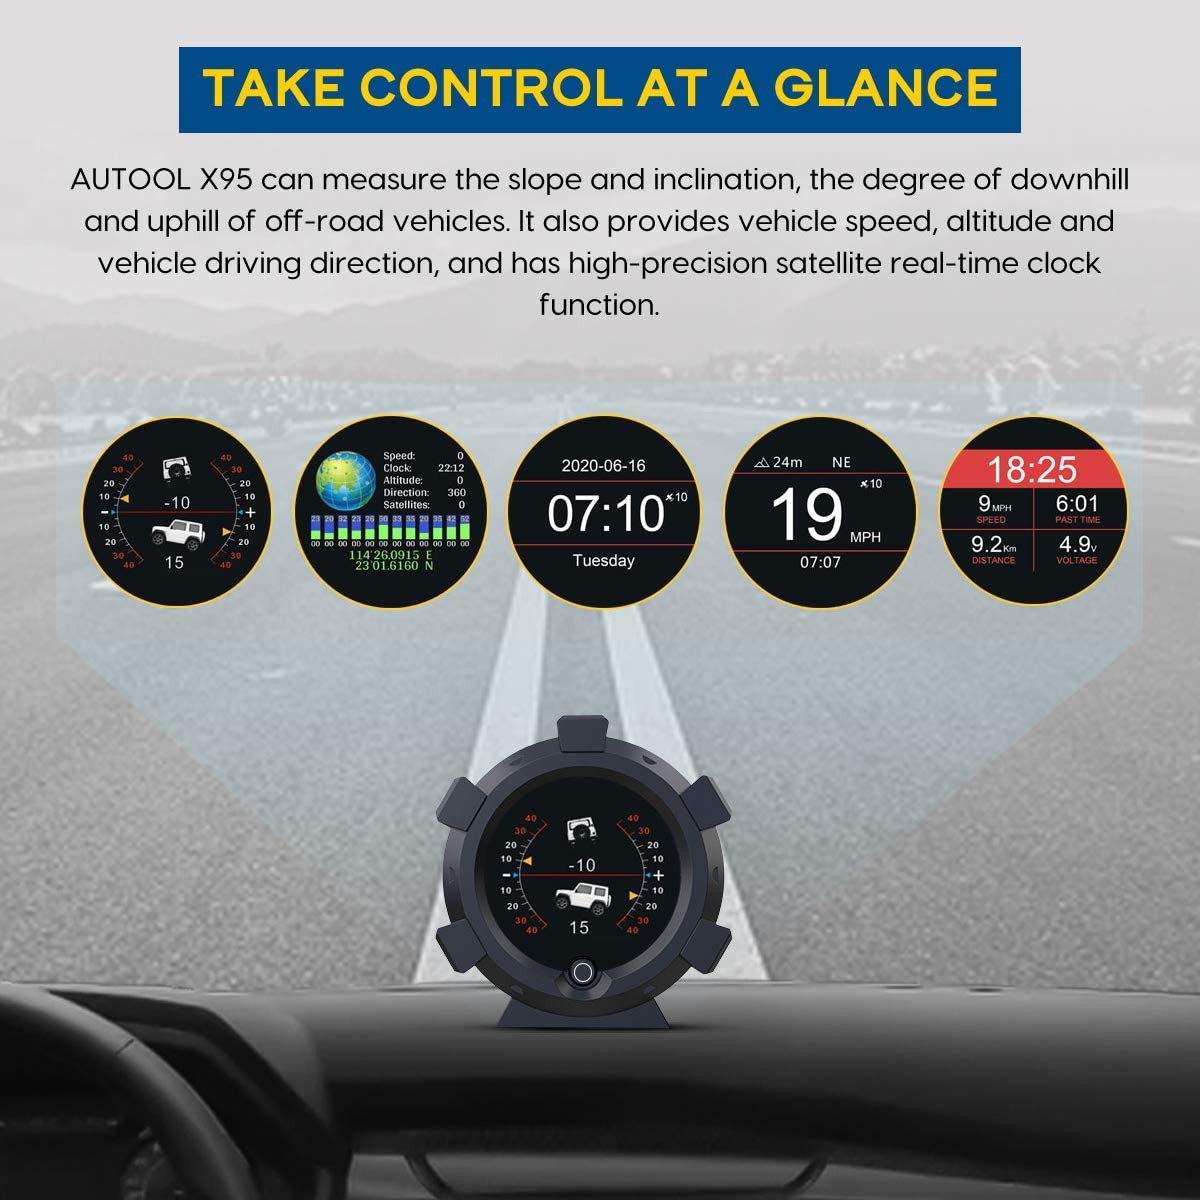 AUTOOL X95 GPS Slope Meter HUD Digital Inclinometer GPS Car Head Up Display Level Tilt Gauge with Function of Date /& Time Speedometer,Battery Voltage,Mileage Measurement for All DC5-28V Cars